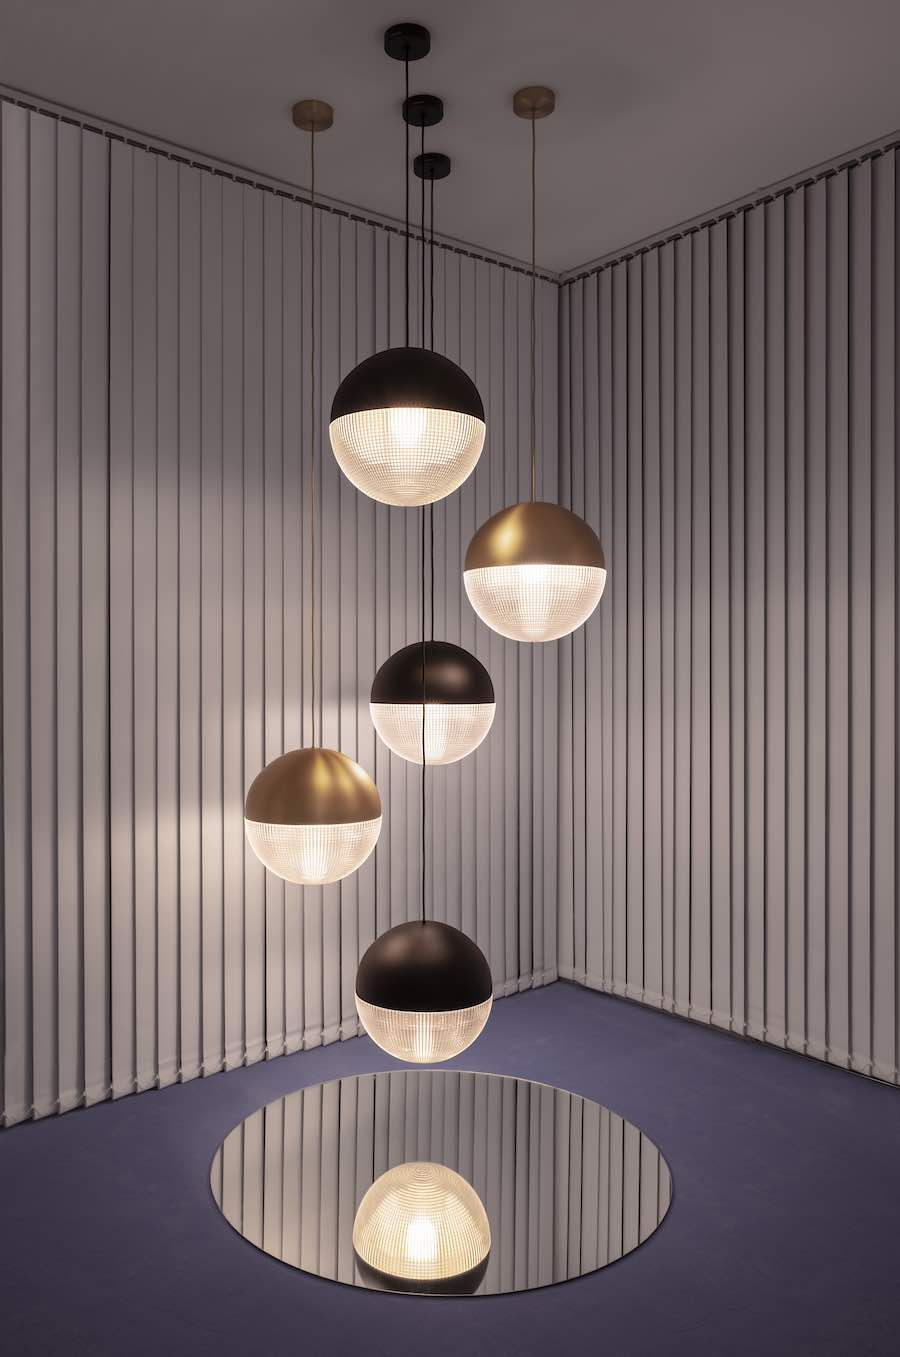 Lee broom's OBSERVATORY stellar-inspired lighting collection shines in London - Photo: courtesy of Lee Broom.